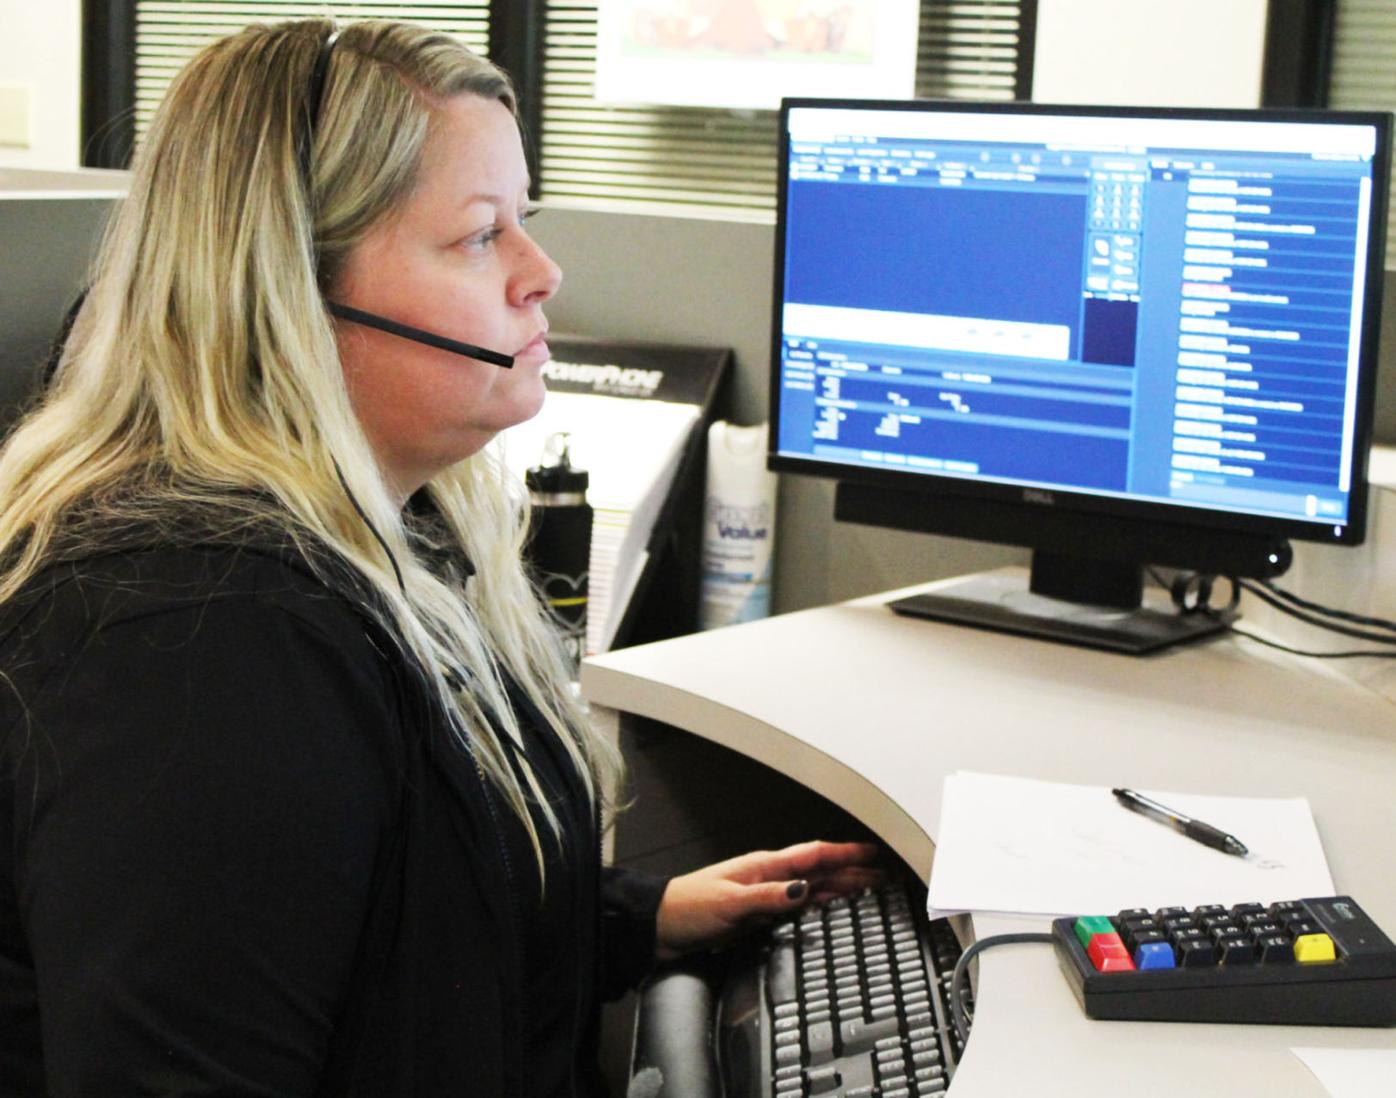 Local dispatcher recognized by state